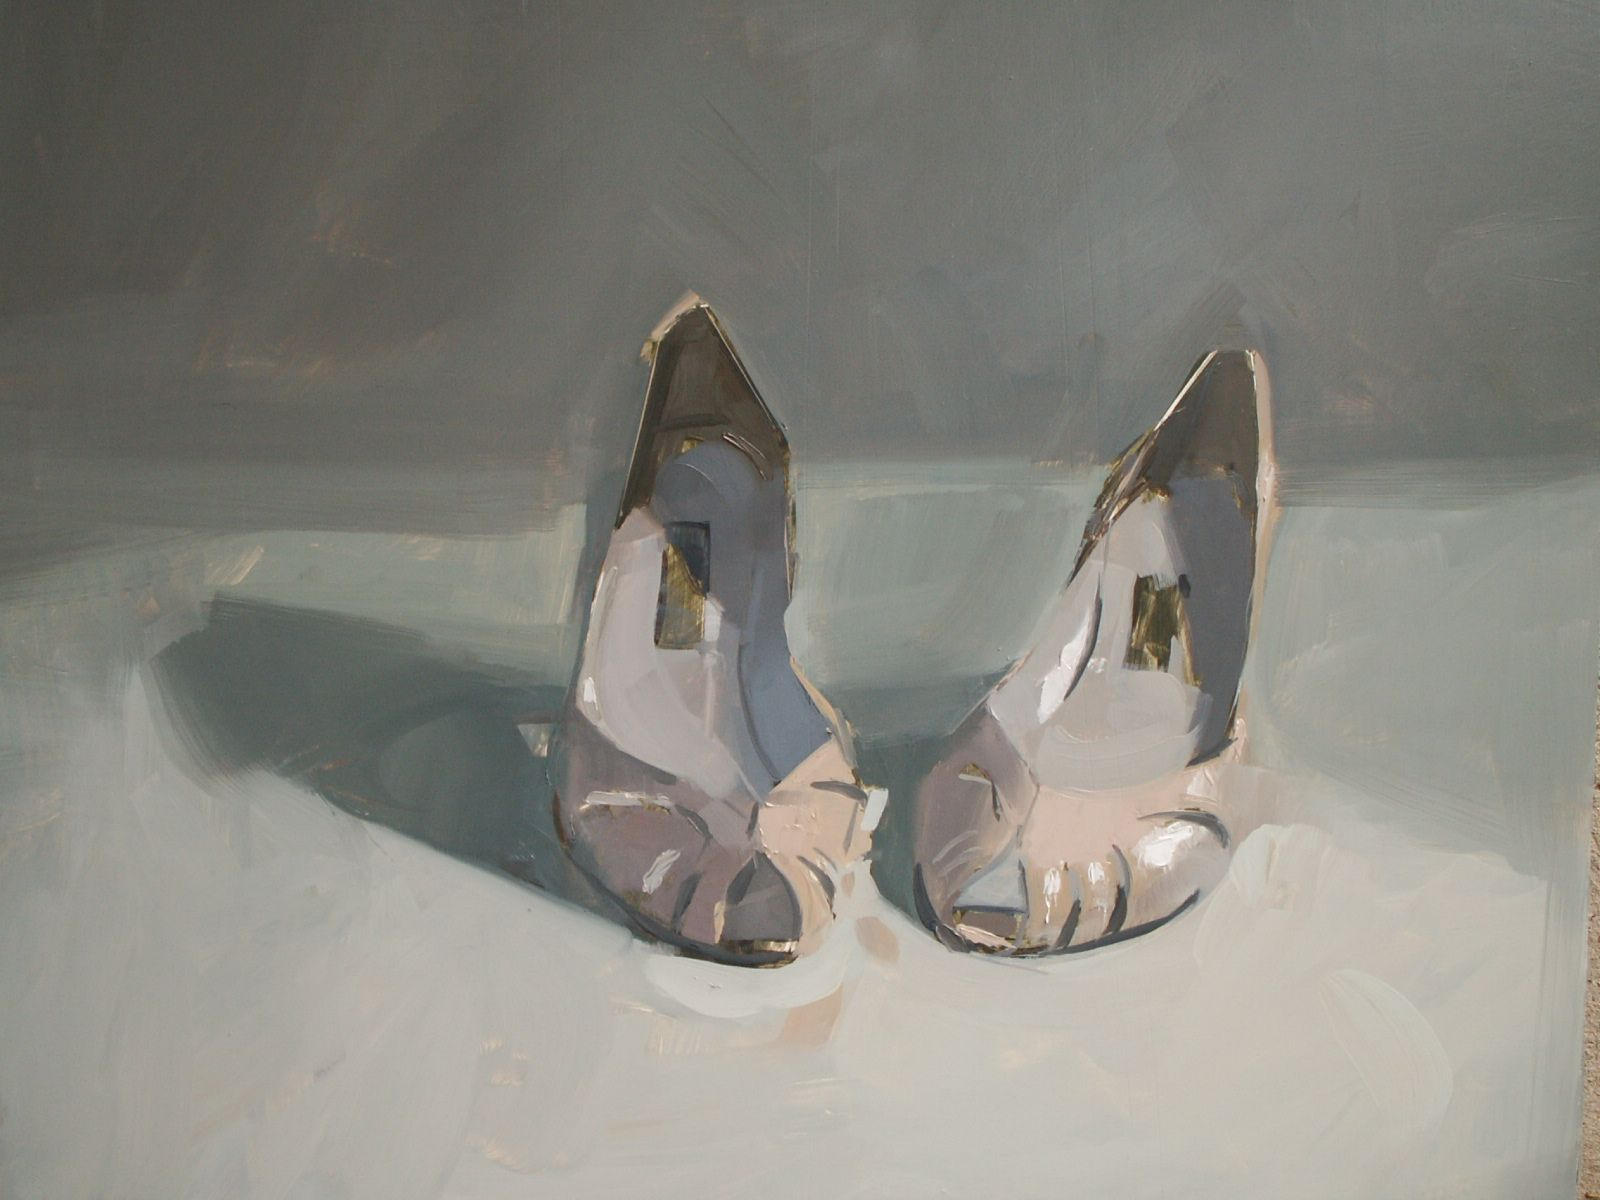 Paint What Makes Your Heart Hurt An Interview With Chelsea Bentley James Chelsea James Painted Shoes Shoe Image